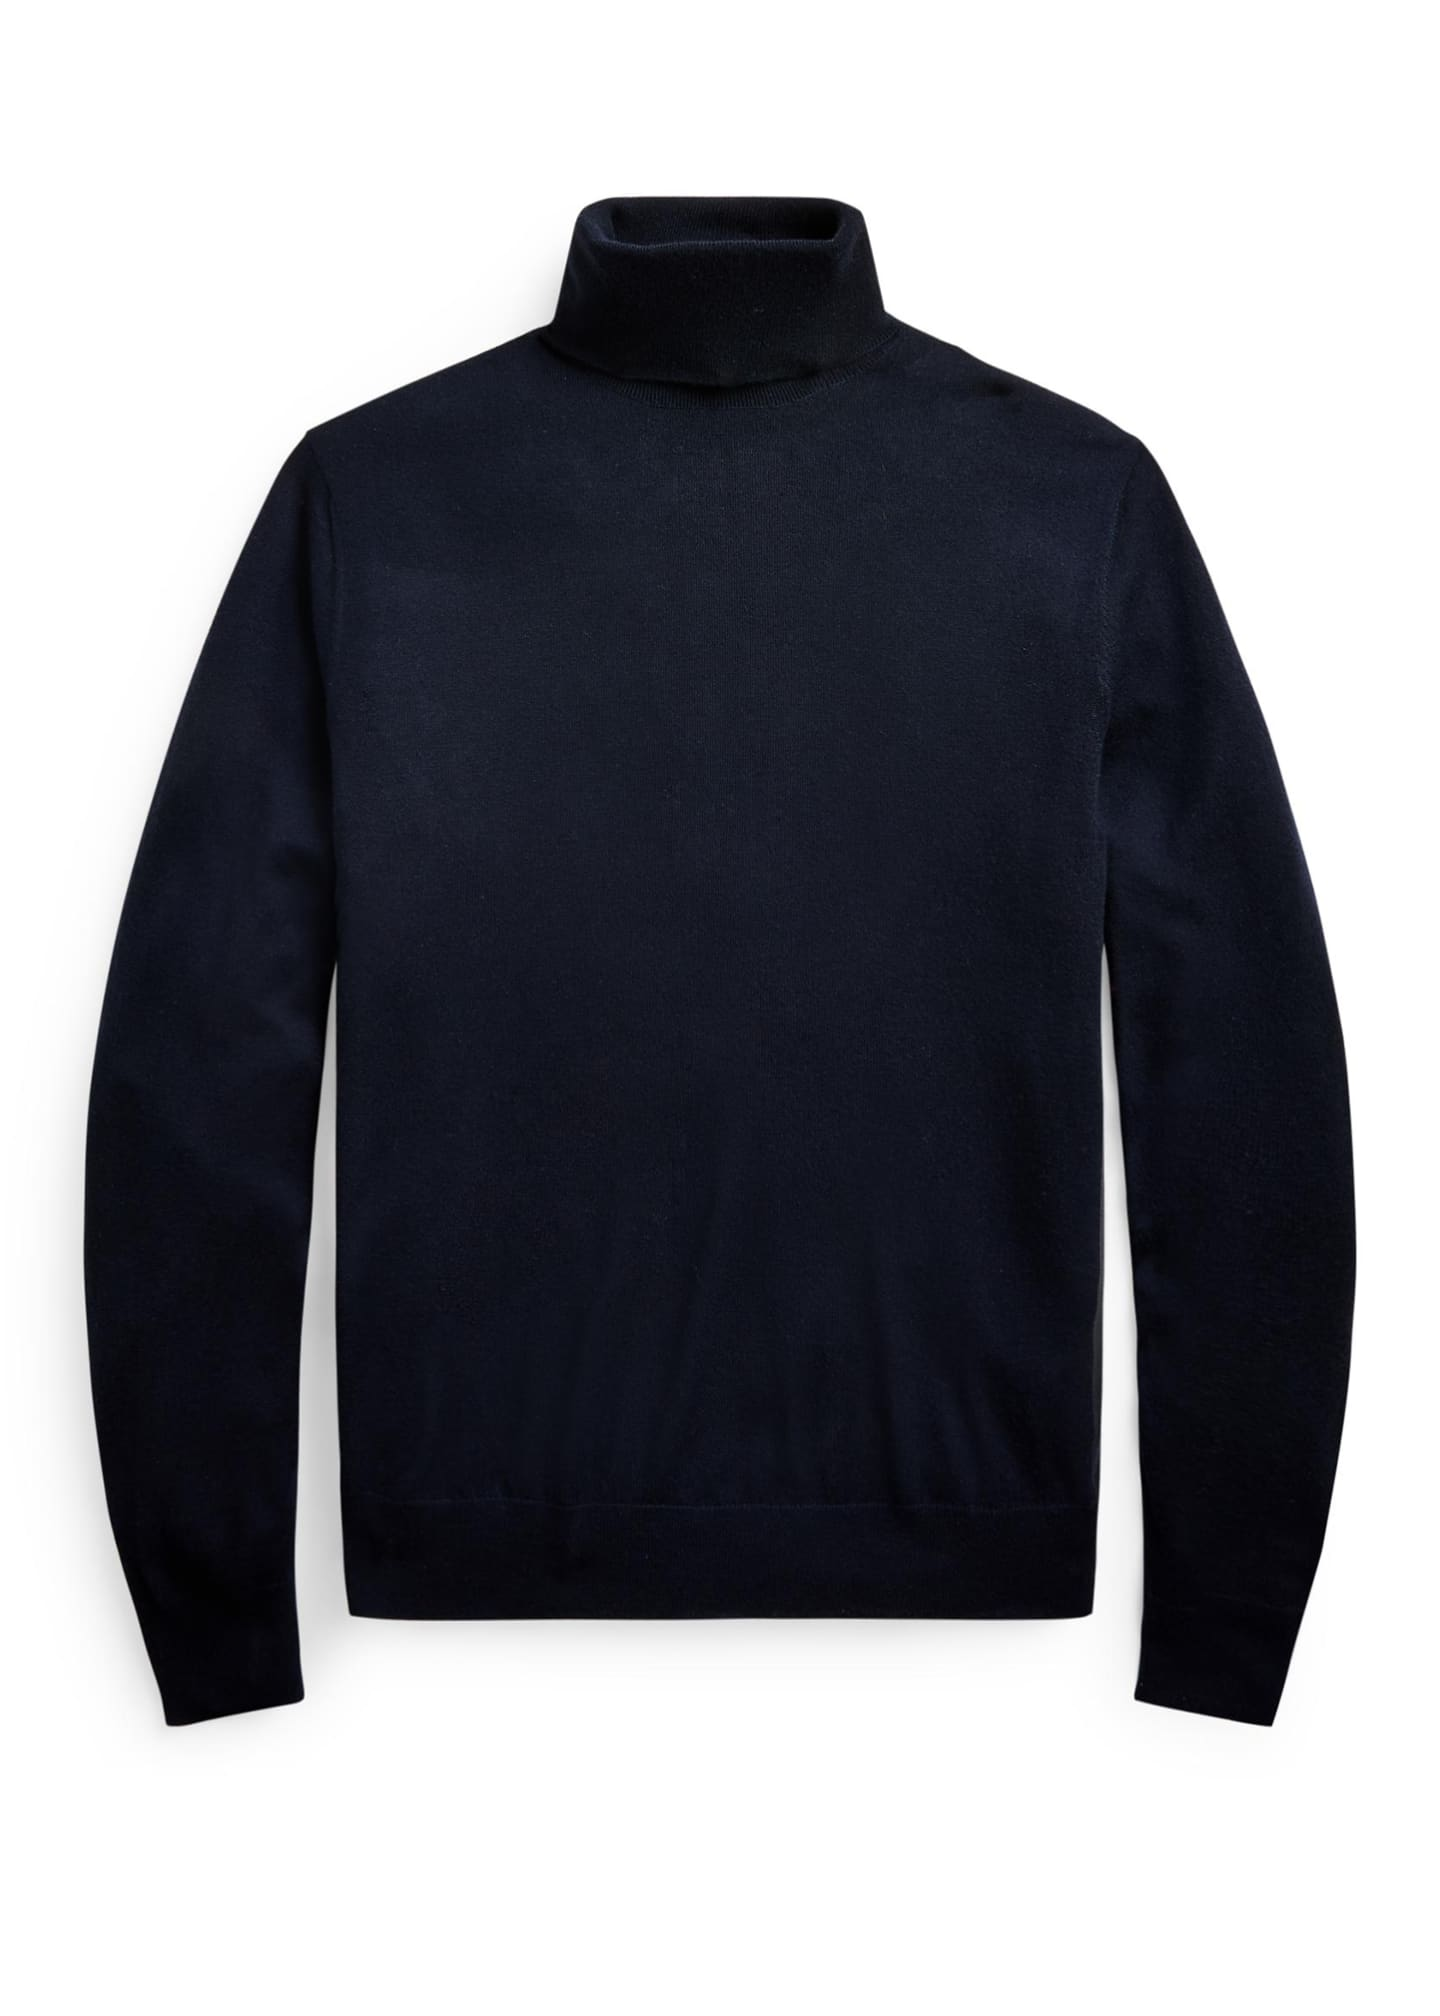 Image 3 of 3: Men's Solid Cashmere Turtleneck Sweater